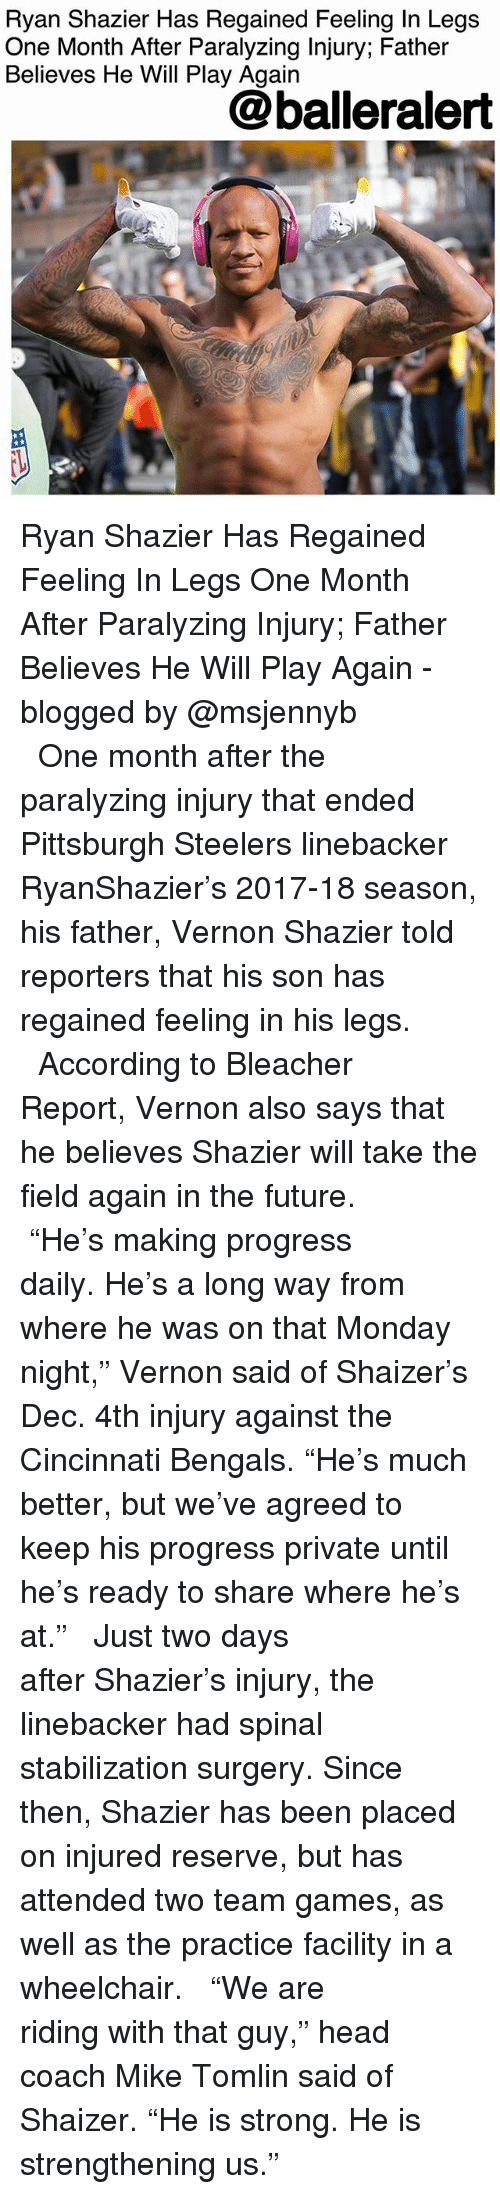 """Bleacher Report: Ryan Shazier Has Regained Feeling In Legs  One Month After Paralyzing Injury; Father  Believes He Will Play Again  @balleralert Ryan Shazier Has Regained Feeling In Legs One Month After Paralyzing Injury; Father Believes He Will Play Again - blogged by @msjennyb ⠀⠀⠀⠀⠀⠀⠀ ⠀⠀⠀⠀⠀⠀⠀ ⠀⠀⠀⠀⠀⠀⠀ One month after the paralyzing injury that ended Pittsburgh Steelers linebacker RyanShazier's 2017-18 season, his father, Vernon Shazier told reporters that his son has regained feeling in his legs. ⠀⠀⠀⠀⠀⠀⠀ ⠀⠀⠀⠀⠀⠀⠀ According to Bleacher Report, Vernon also says that he believes Shazier will take the field again in the future. ⠀⠀⠀⠀⠀⠀⠀ ⠀⠀⠀⠀⠀⠀⠀ """"He's making progress daily. He's a long way from where he was on that Monday night,"""" Vernon said of Shaizer's Dec. 4th injury against the Cincinnati Bengals. """"He's much better, but we've agreed to keep his progress private until he's ready to share where he's at."""" ⠀⠀⠀⠀⠀⠀⠀ ⠀⠀⠀⠀⠀⠀⠀ Just two days after Shazier's injury, the linebacker had spinal stabilization surgery. Since then, Shazier has been placed on injured reserve, but has attended two team games, as well as the practice facility in a wheelchair. ⠀⠀⠀⠀⠀⠀⠀ ⠀⠀⠀⠀⠀⠀⠀ """"We are riding with that guy,"""" head coach Mike Tomlin said of Shaizer. """"He is strong. He is strengthening us."""""""